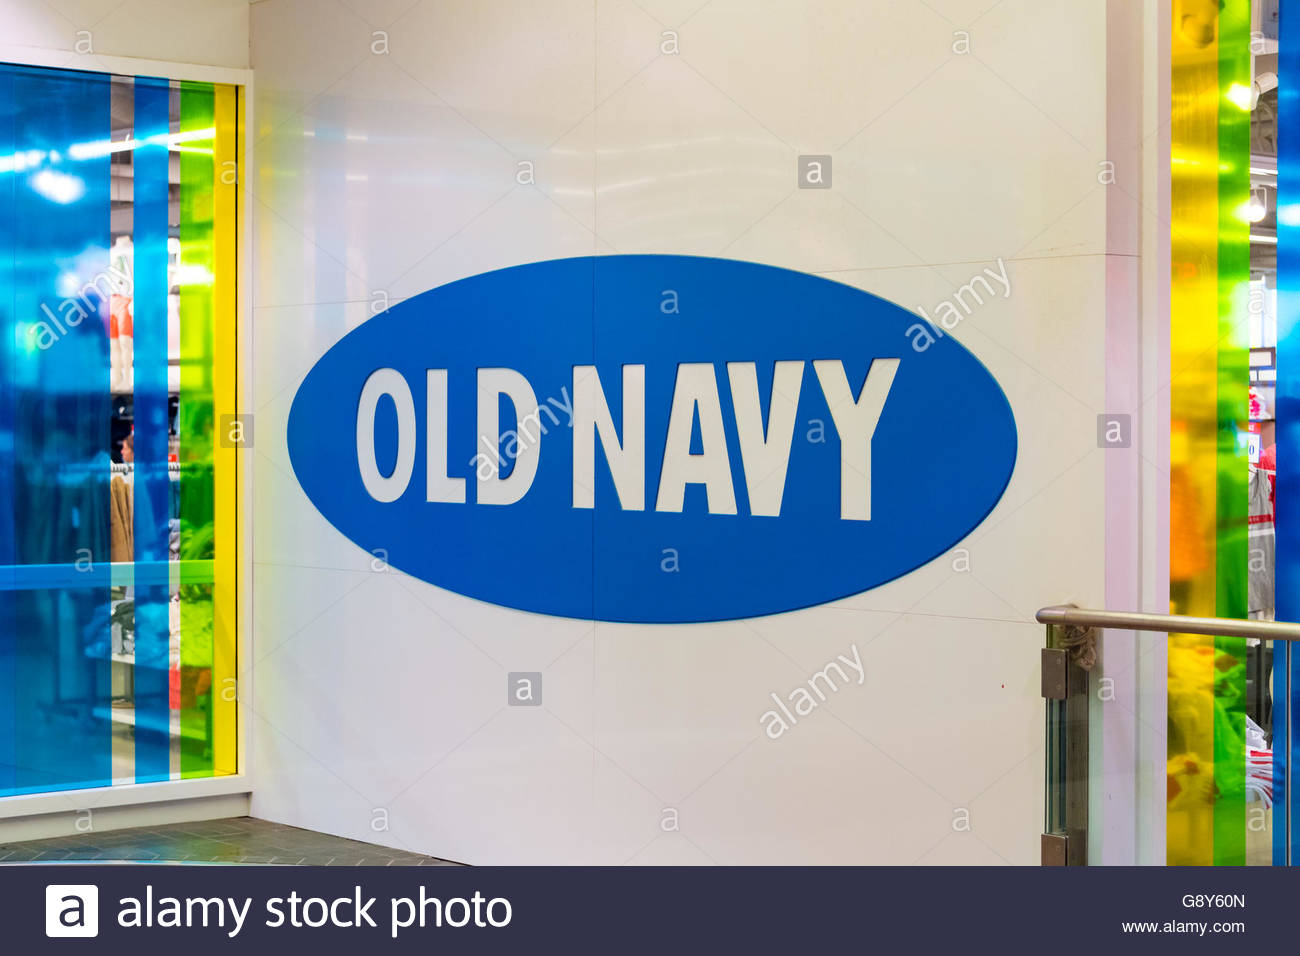 Old Navy blue logo printed on wall. Old Navy is an American clothing and accessories retailer owned by American - Stock Image